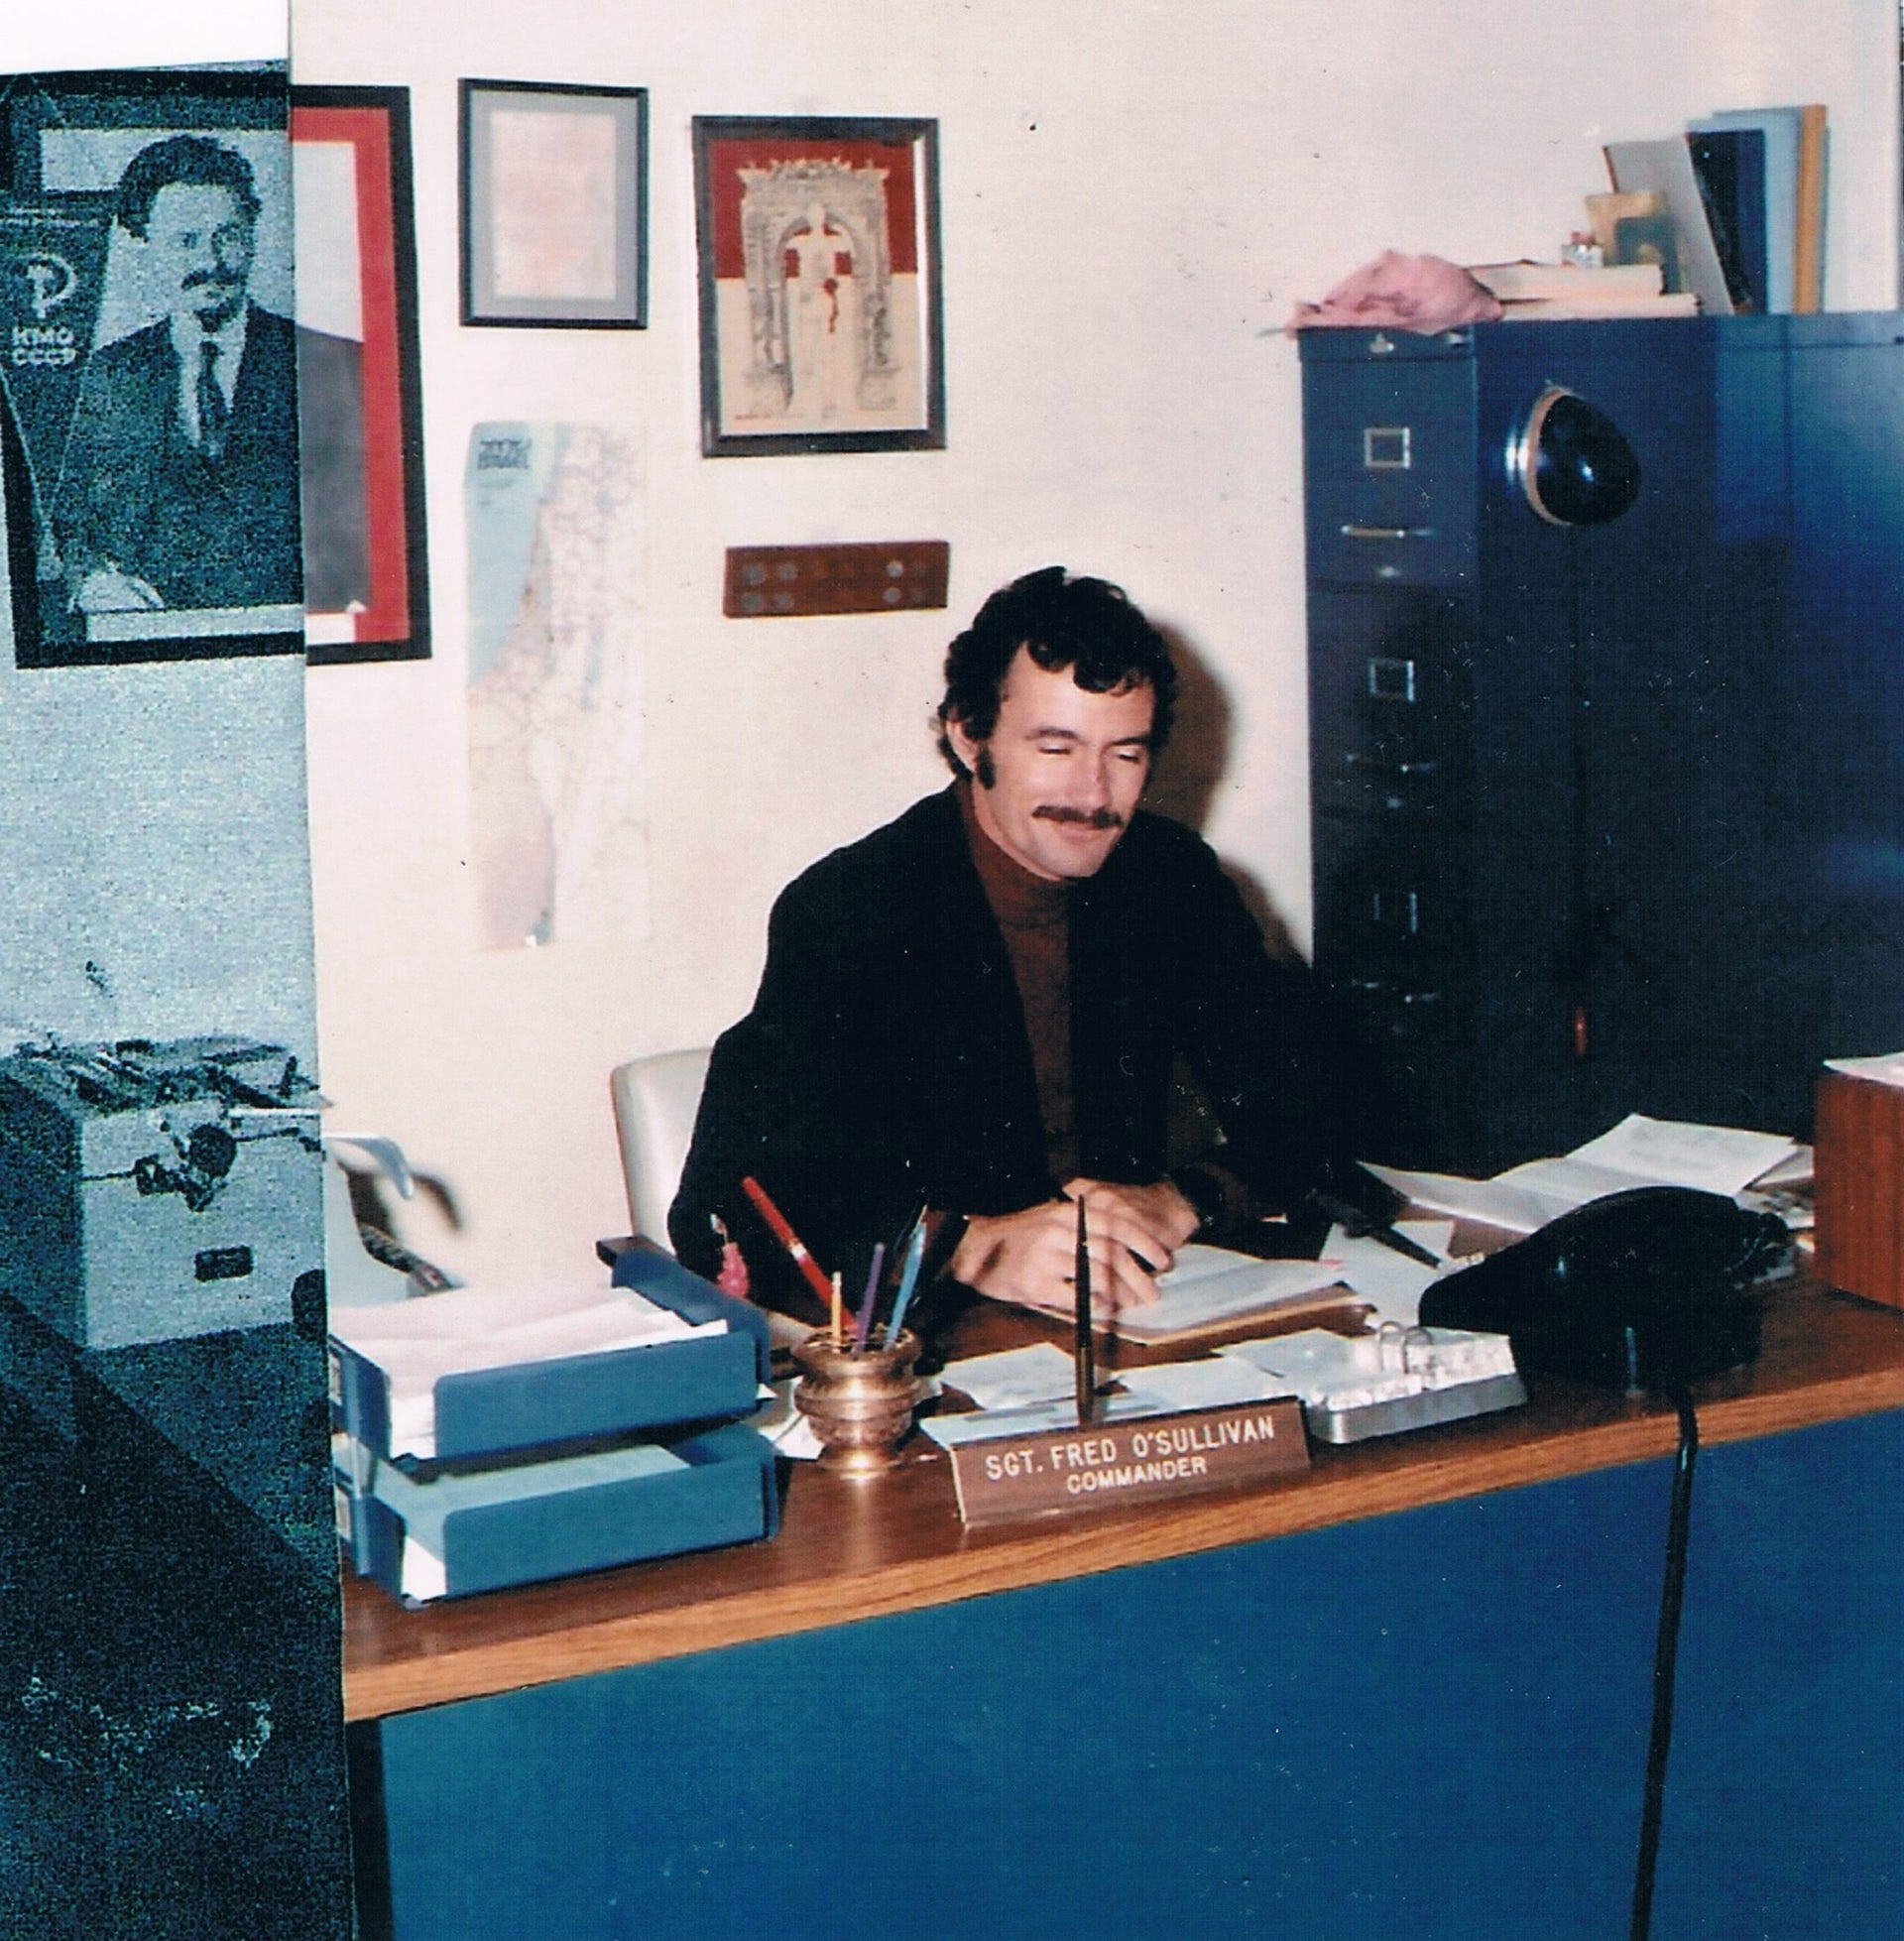 Efraim O'Sullivan at his desk as intelligence chief of the New Orleans Police Department in 1973, the year he immigrated to Israel with his family.